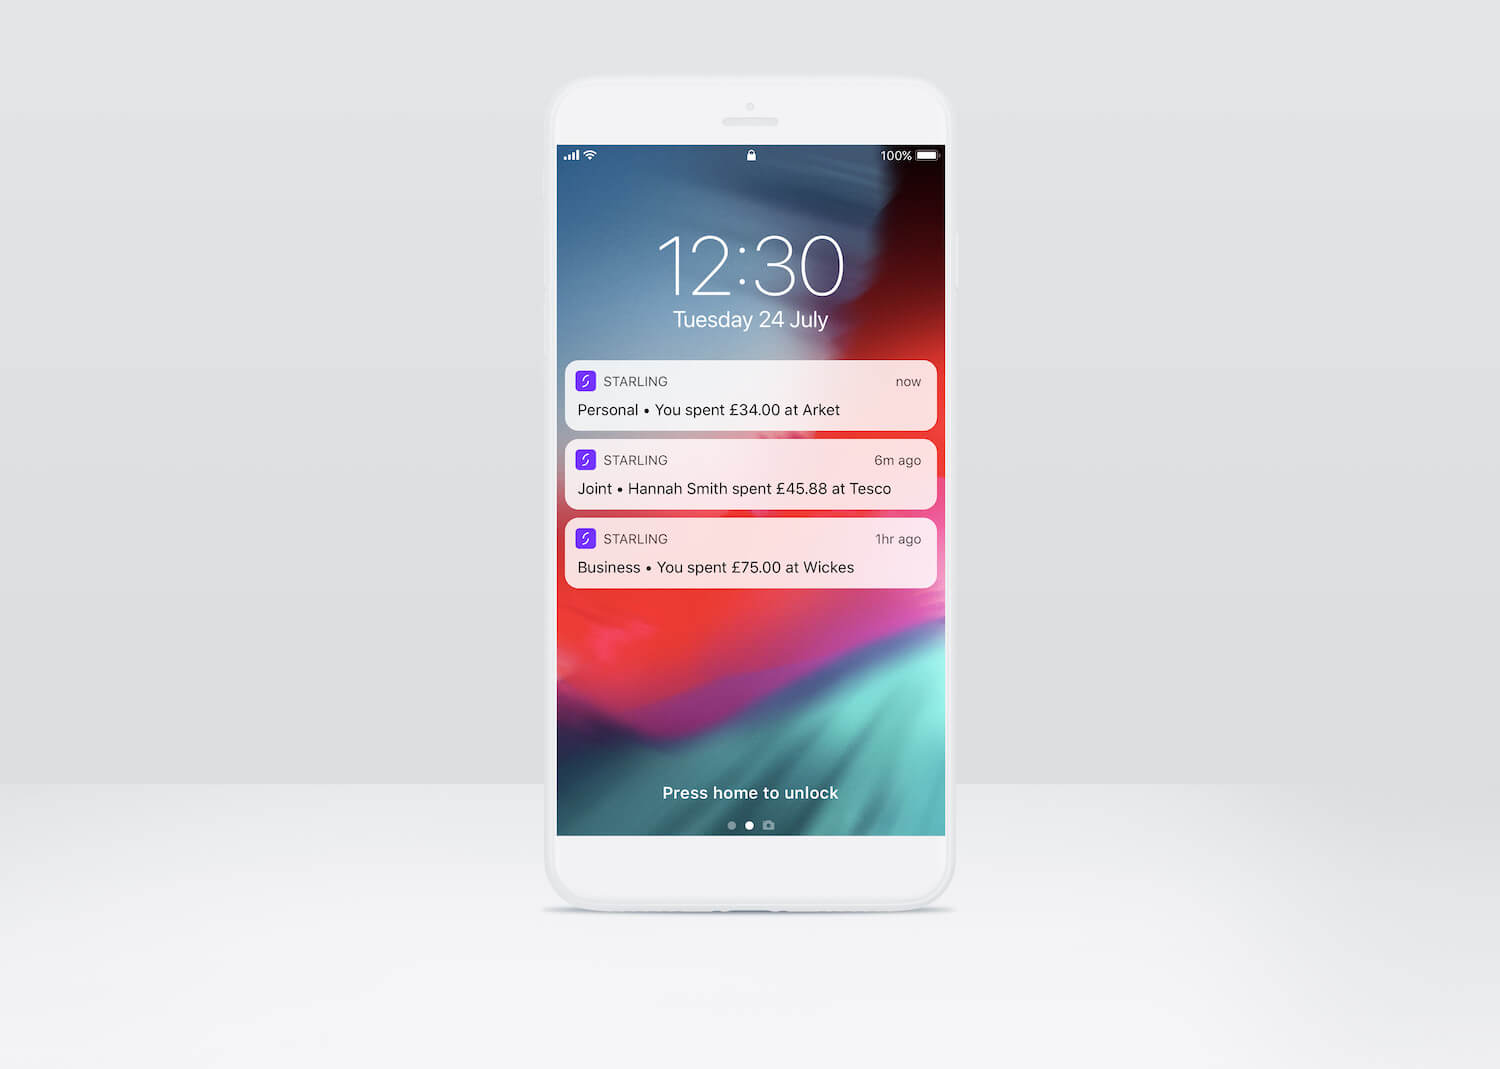 Starling Bank Payment Notifications